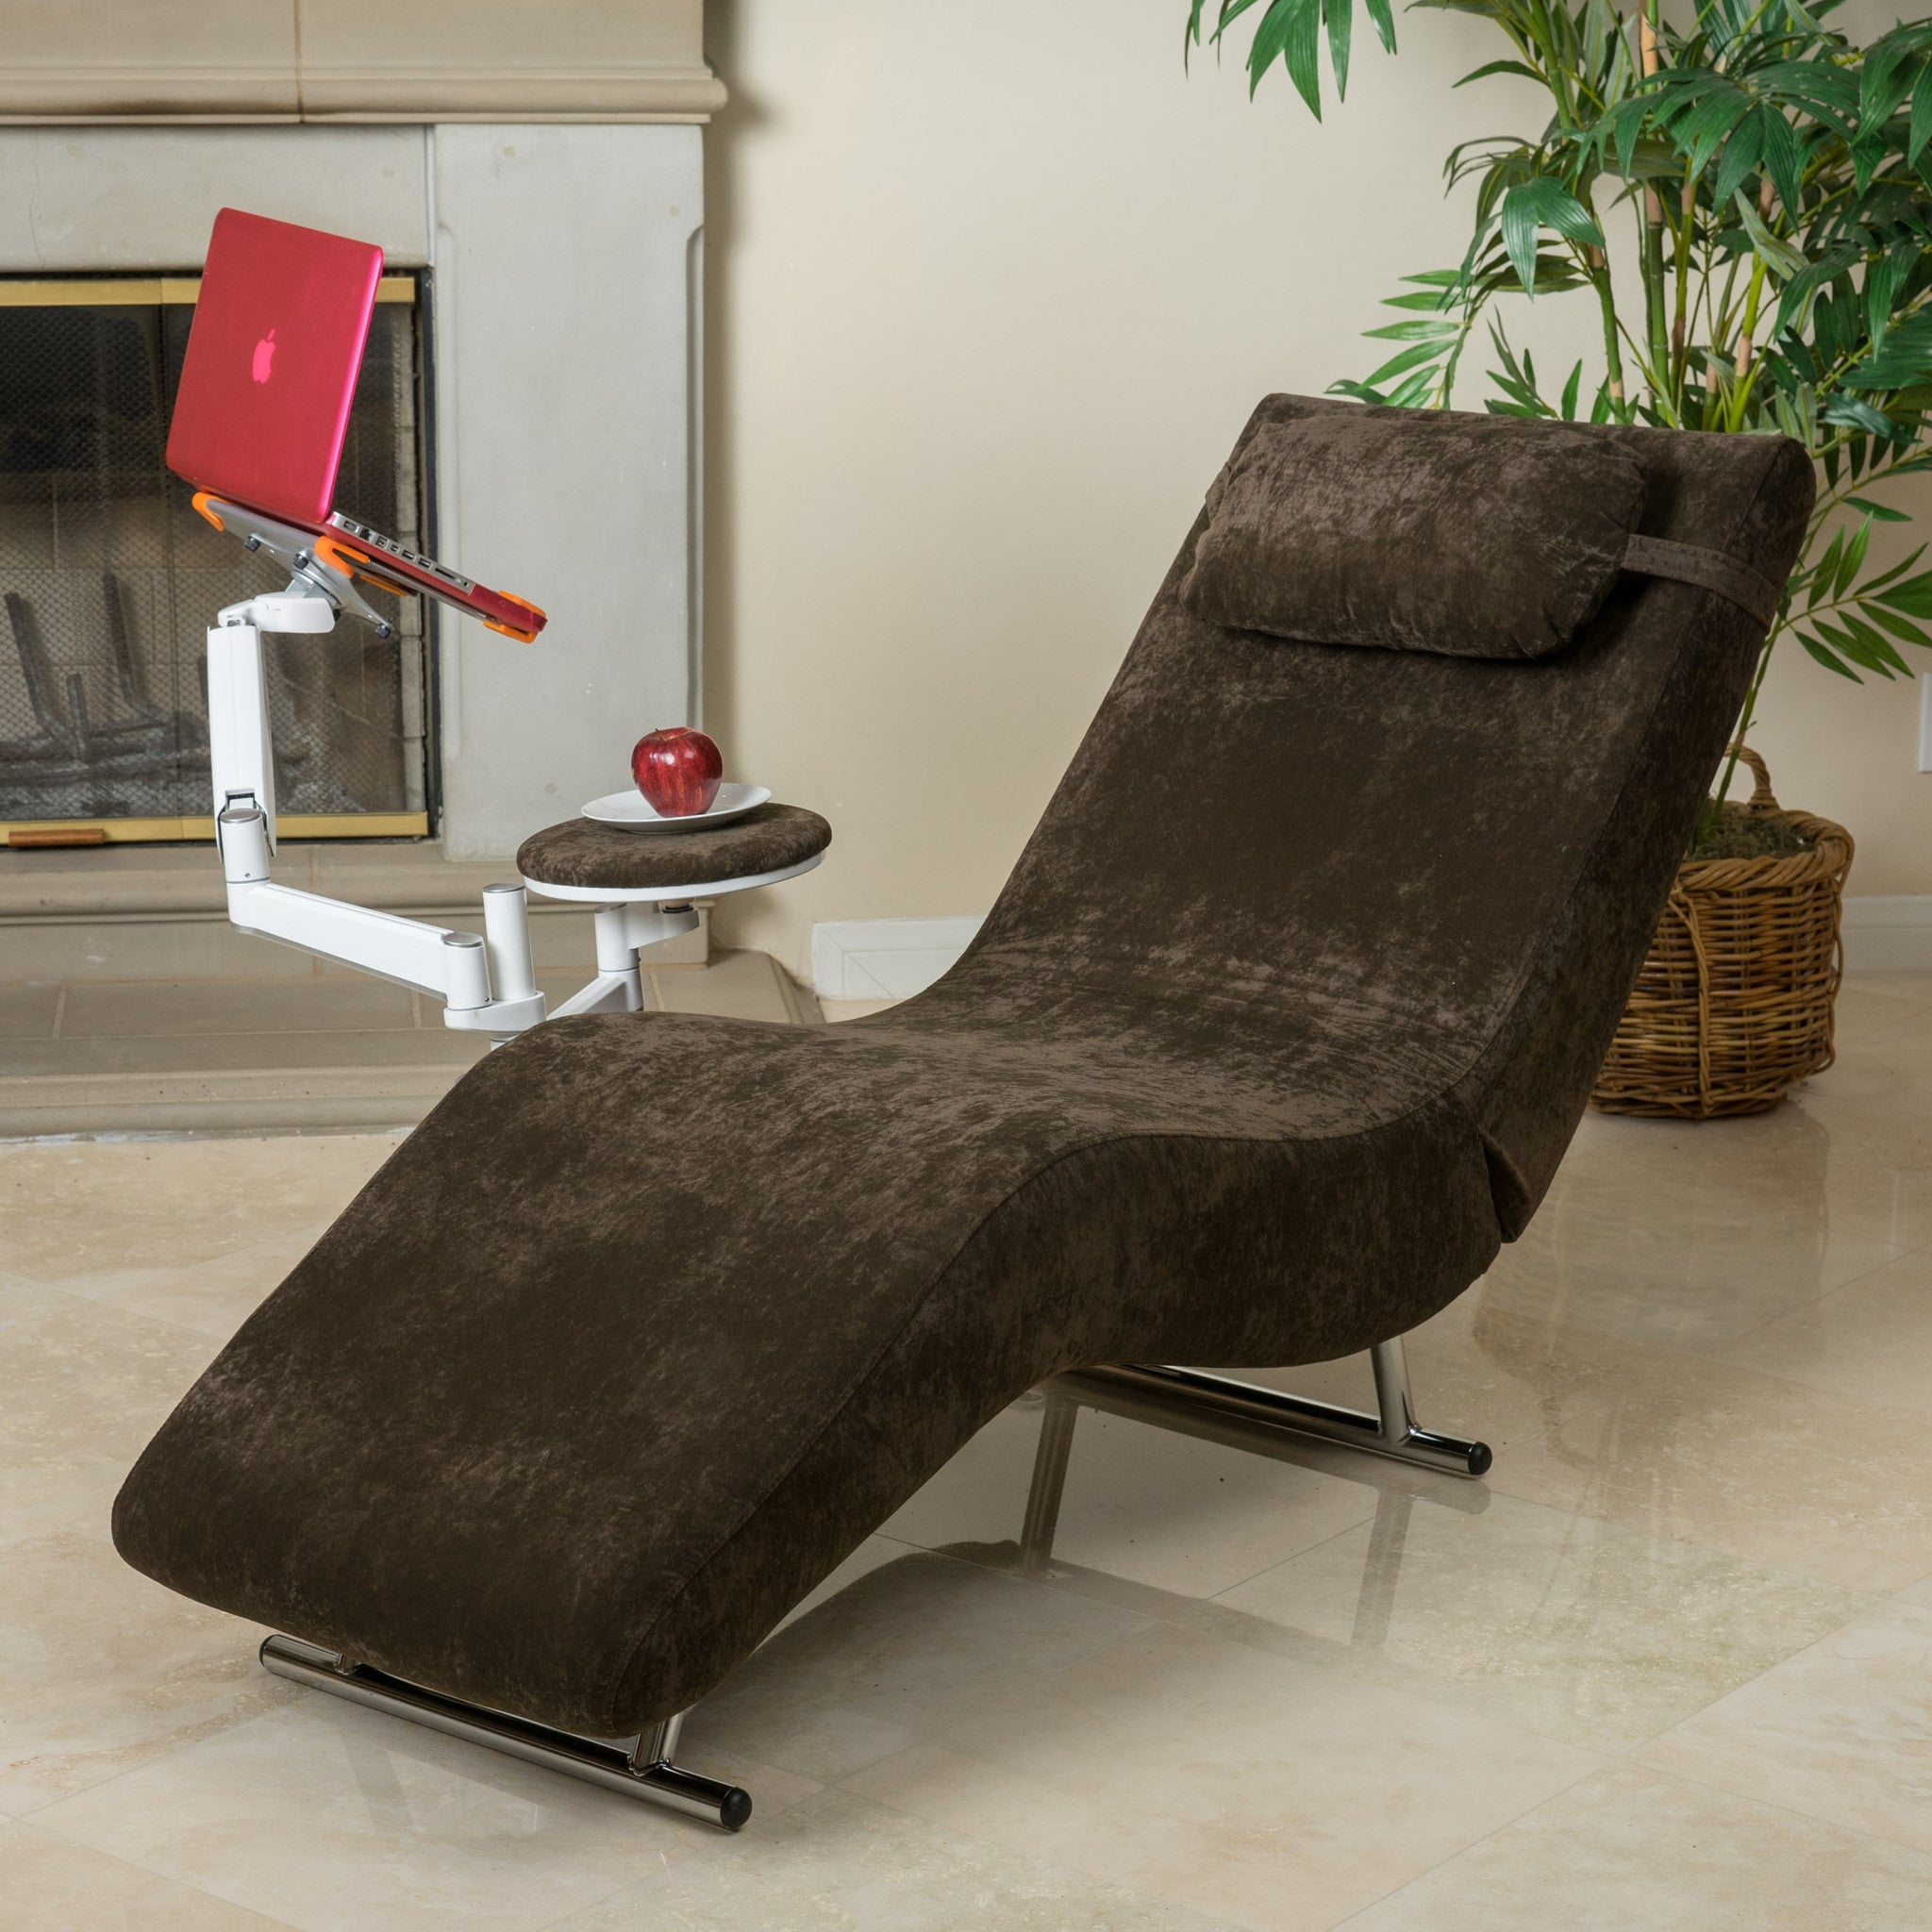 Chairs. Eason Chocolate Brown Velvet Adjustable Chaise Style Chair U0026 Tablet  Stand